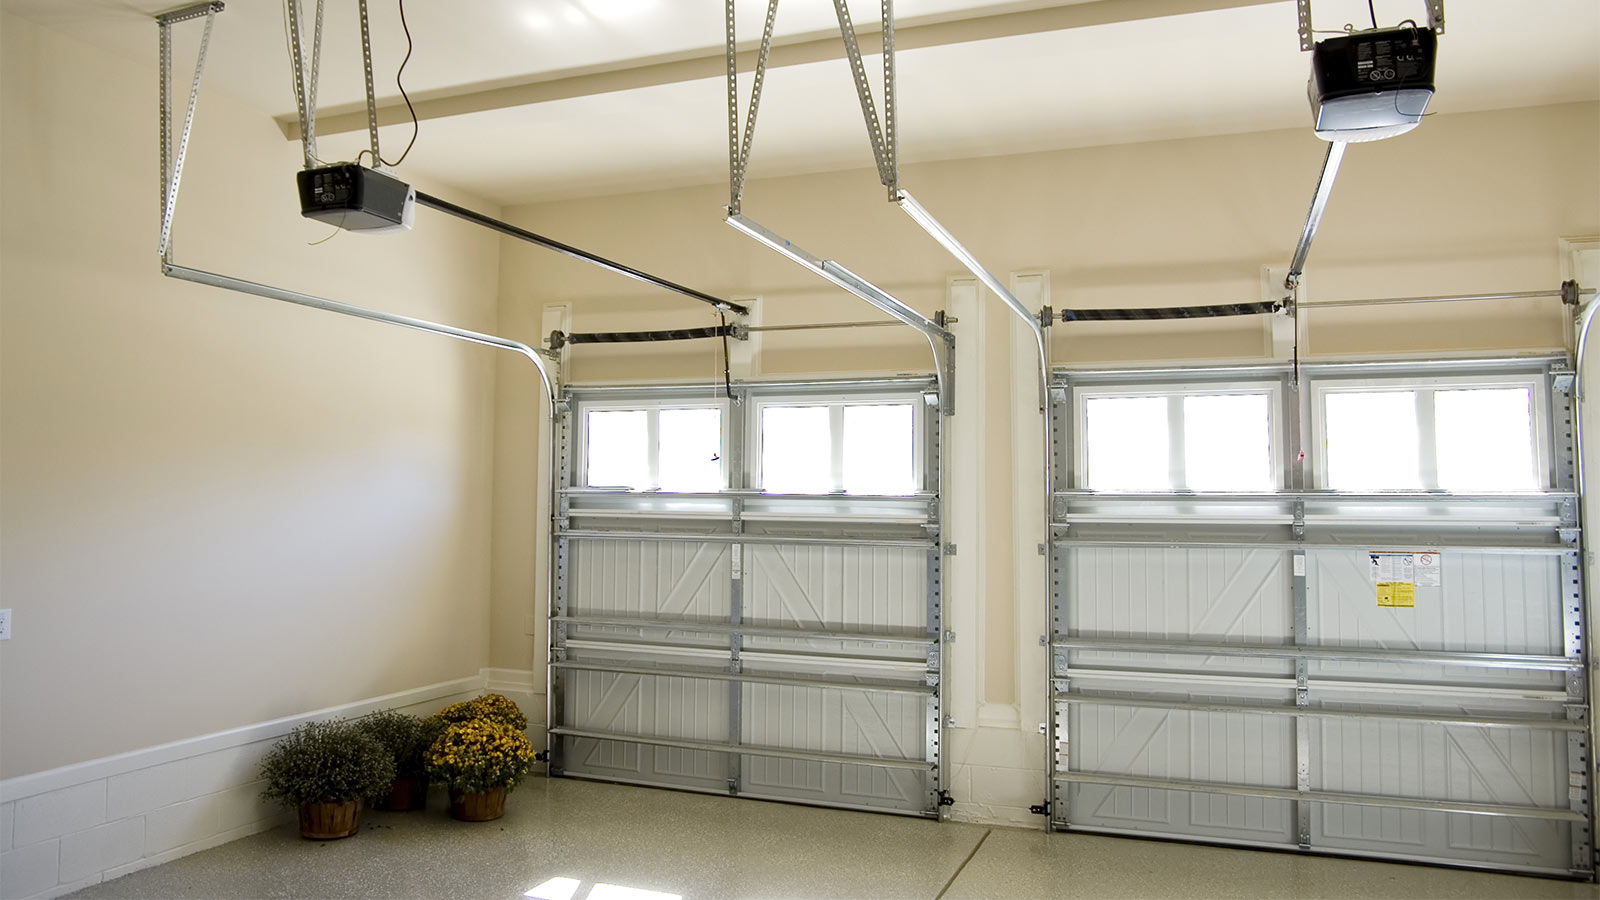 Sectional Garage Doors from Fire Shutters Barking suppliers.